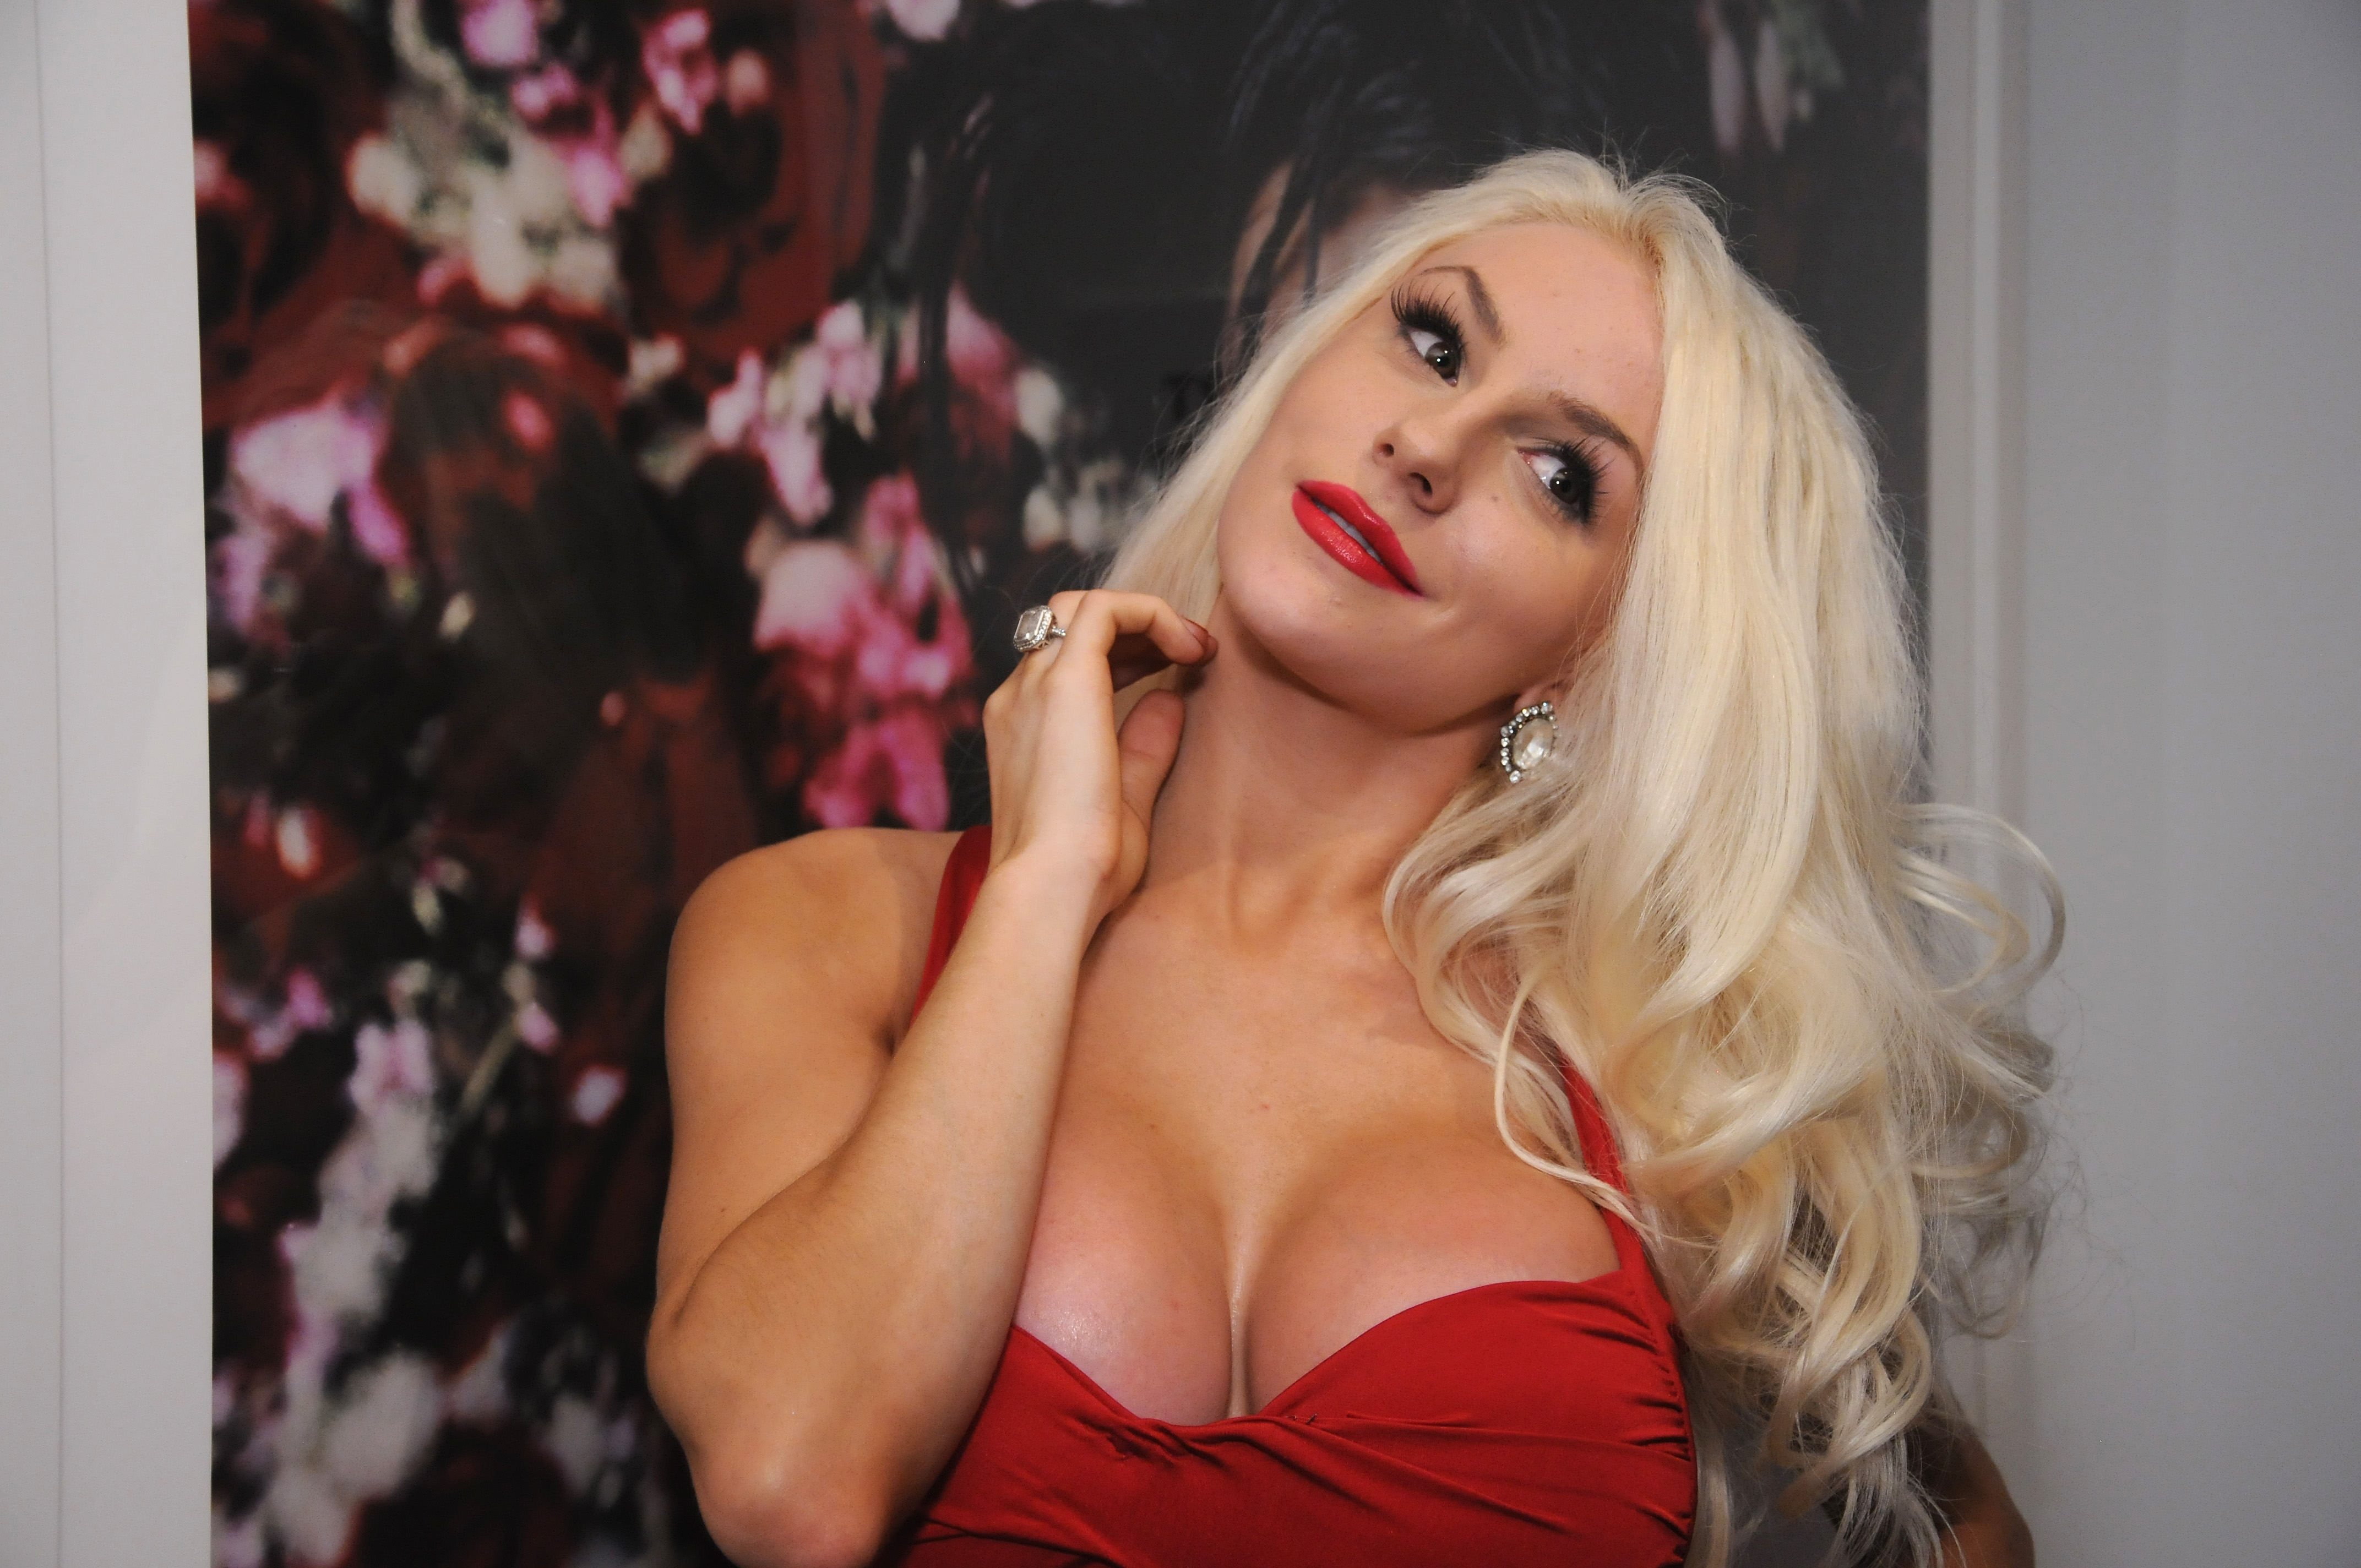 Courtney stodden shows off her boobs and butt onlyfans 5 pics video new photo